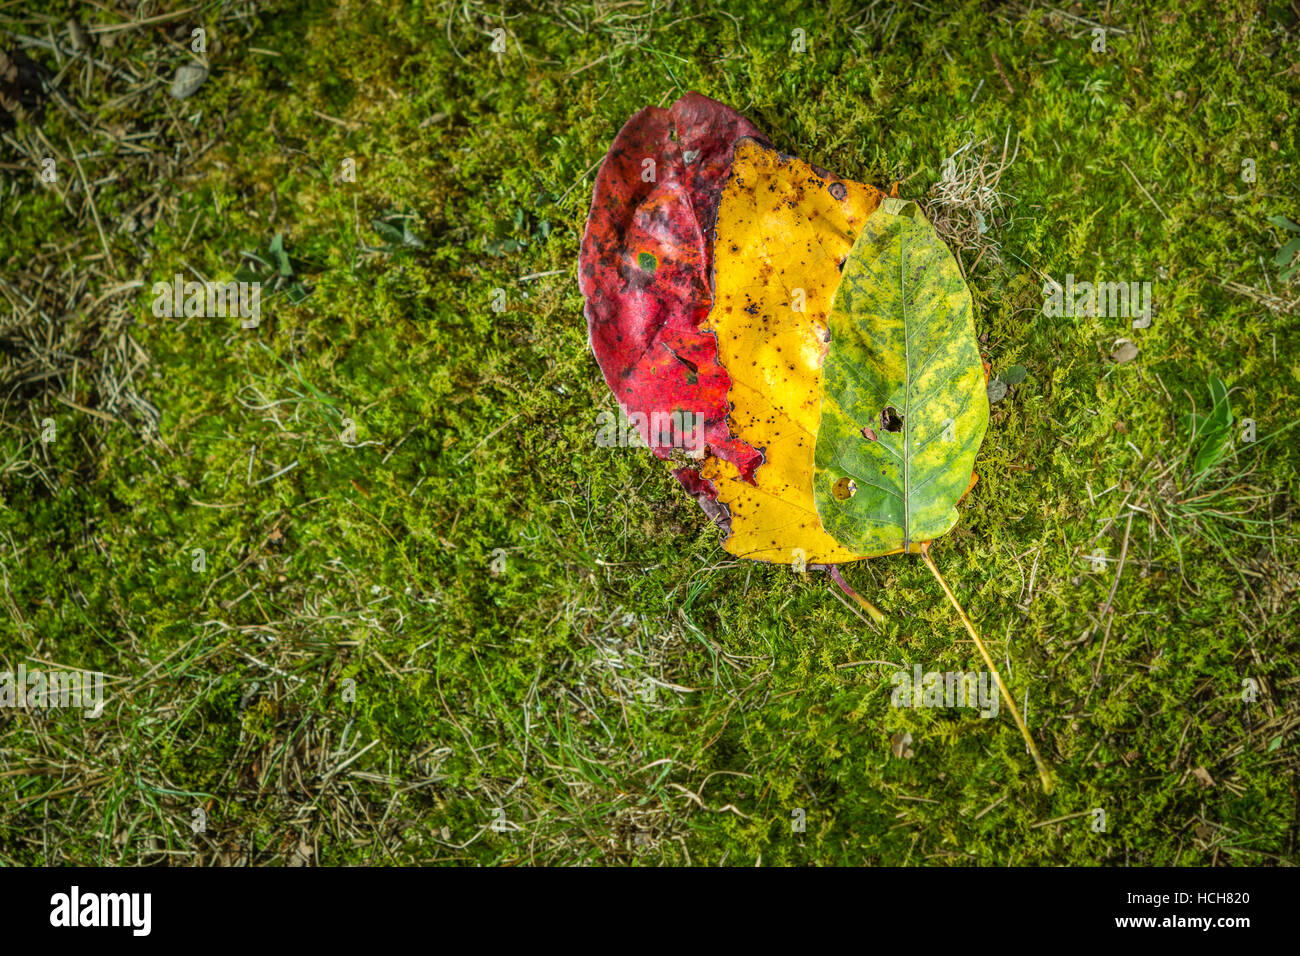 Red Colored Moss Stock Photos & Red Colored Moss Stock Images - Alamy